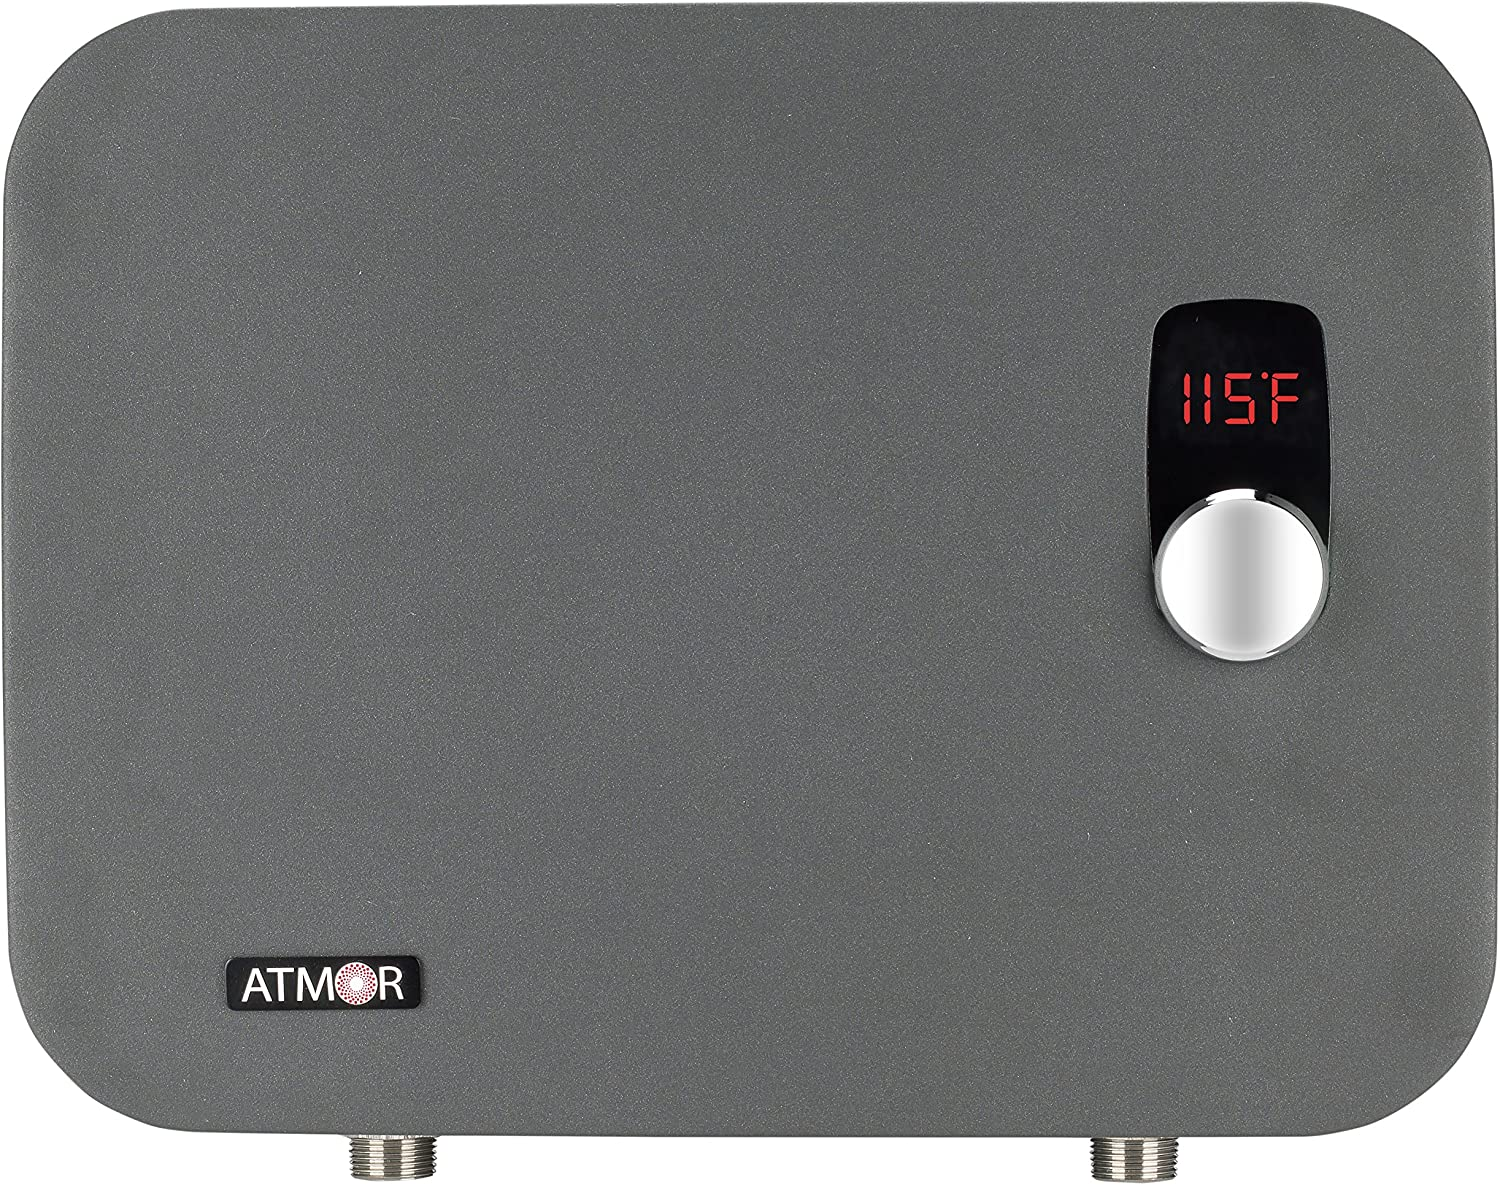 Atmor AT-910-27TP ThermoPro 27kW/240V Electric Tankless Water Heater, 5.1GPM 112.3 Amps